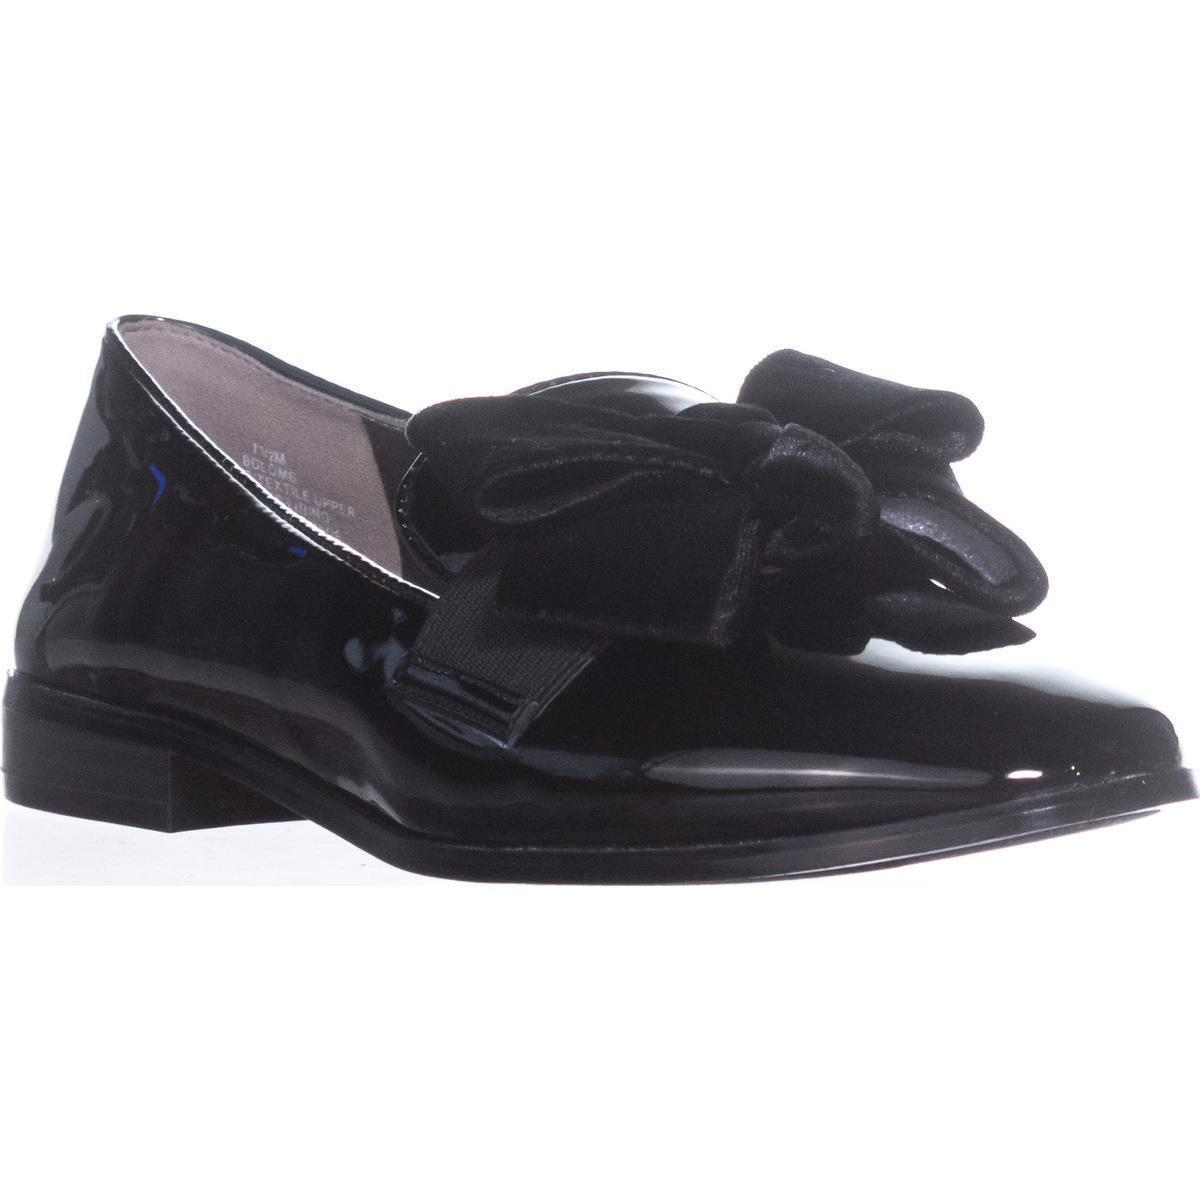 3d140dd4e90 Bandolino Lomb Slip On Loafers in Black - Lyst